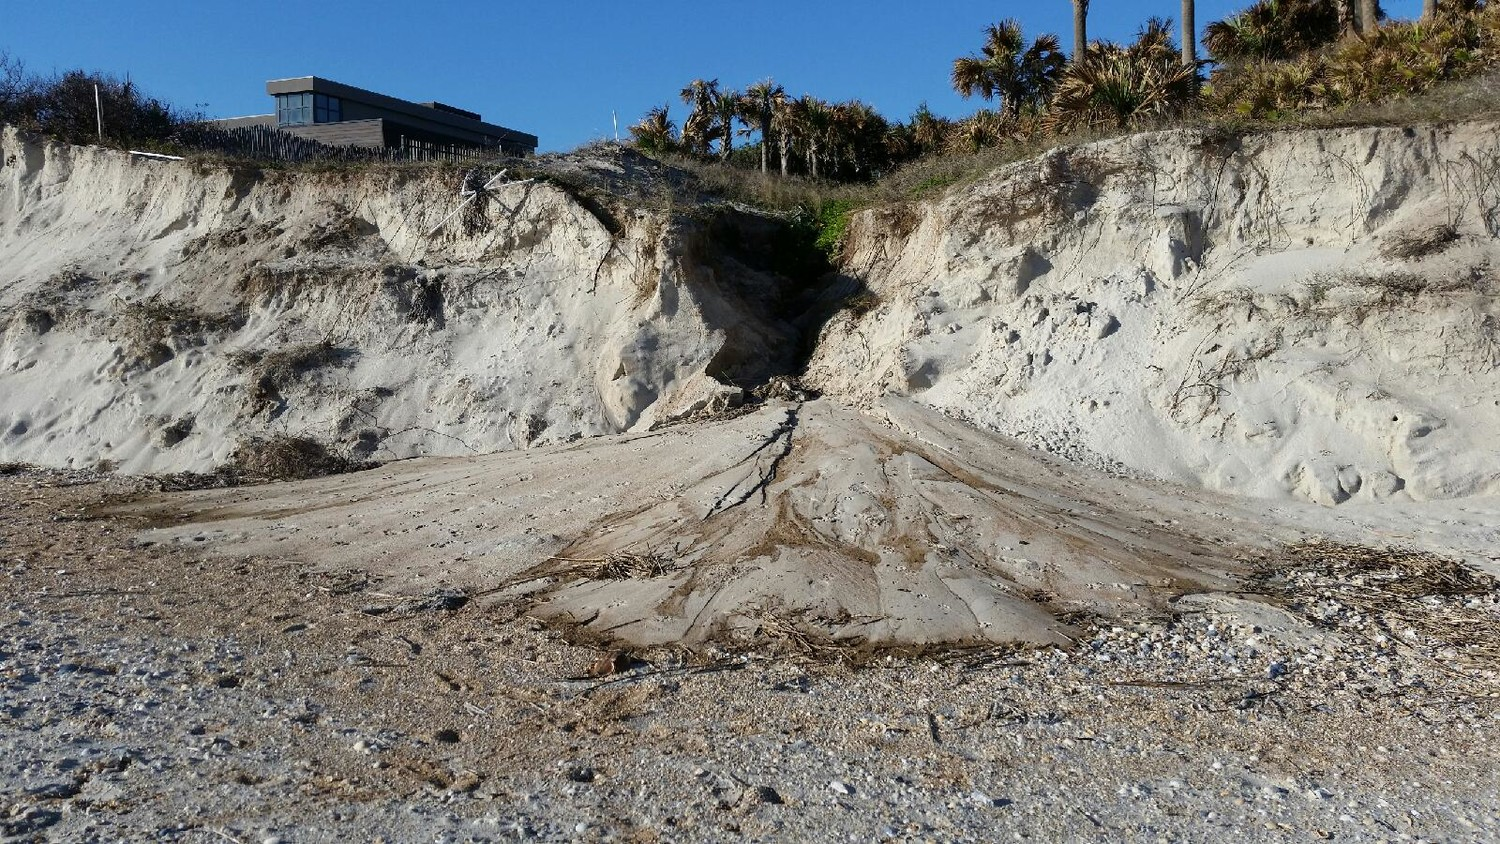 Erosion plagues the coastline between Mickler Road and Sawgrass Country Club.